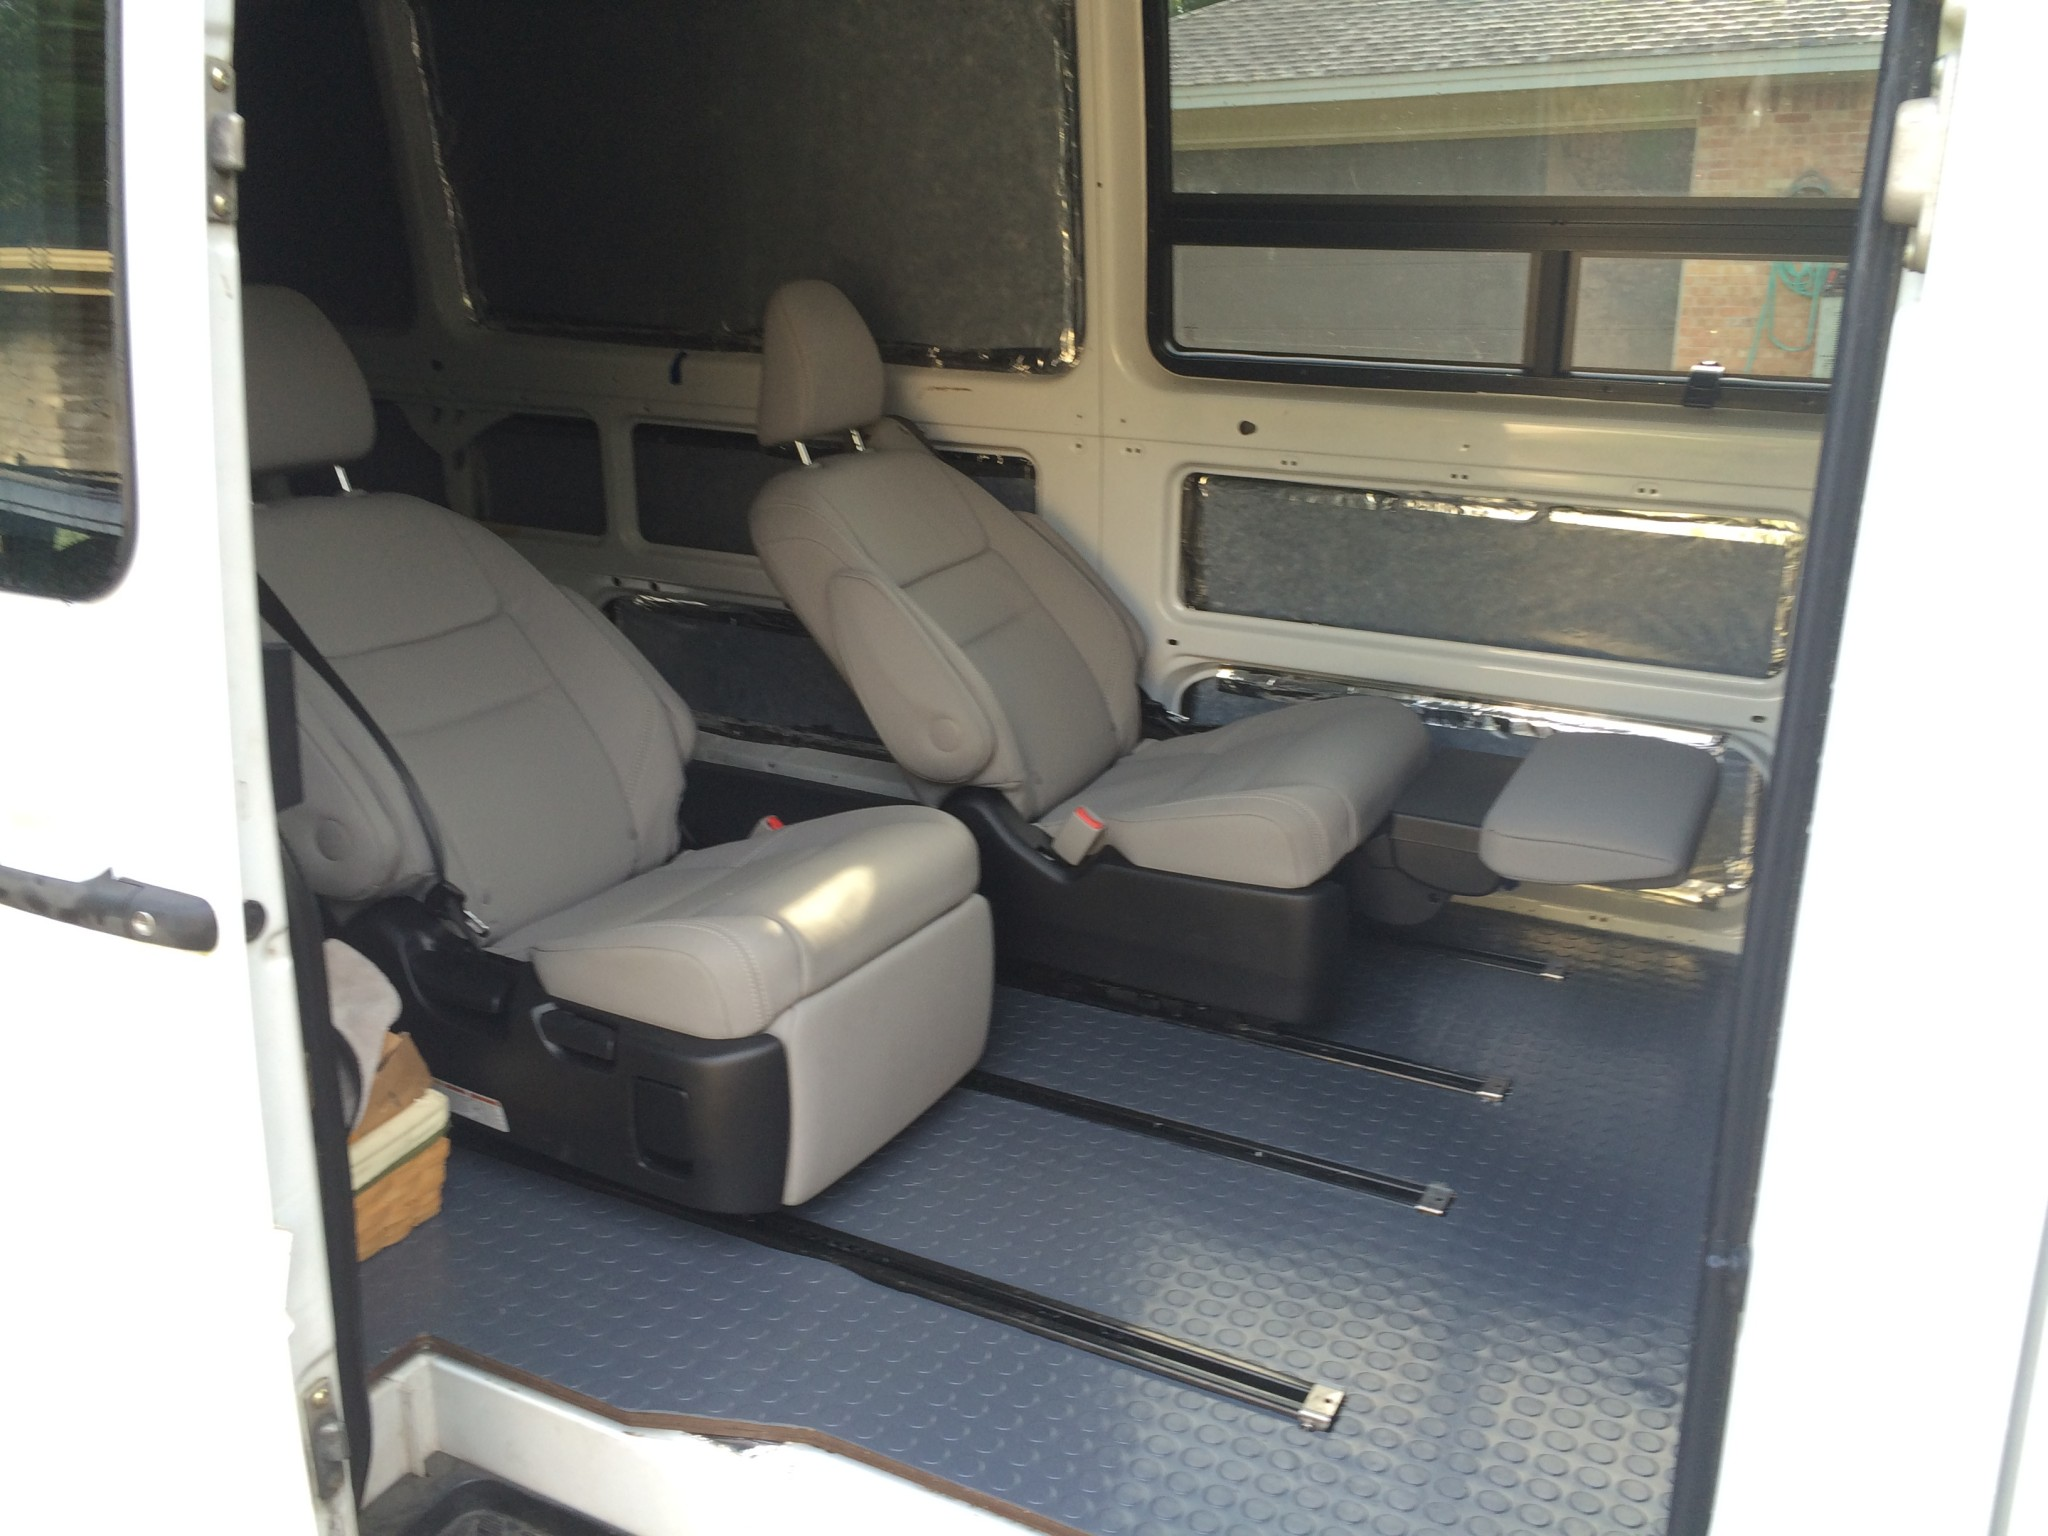 Recliner Seats in a Sprinter Van